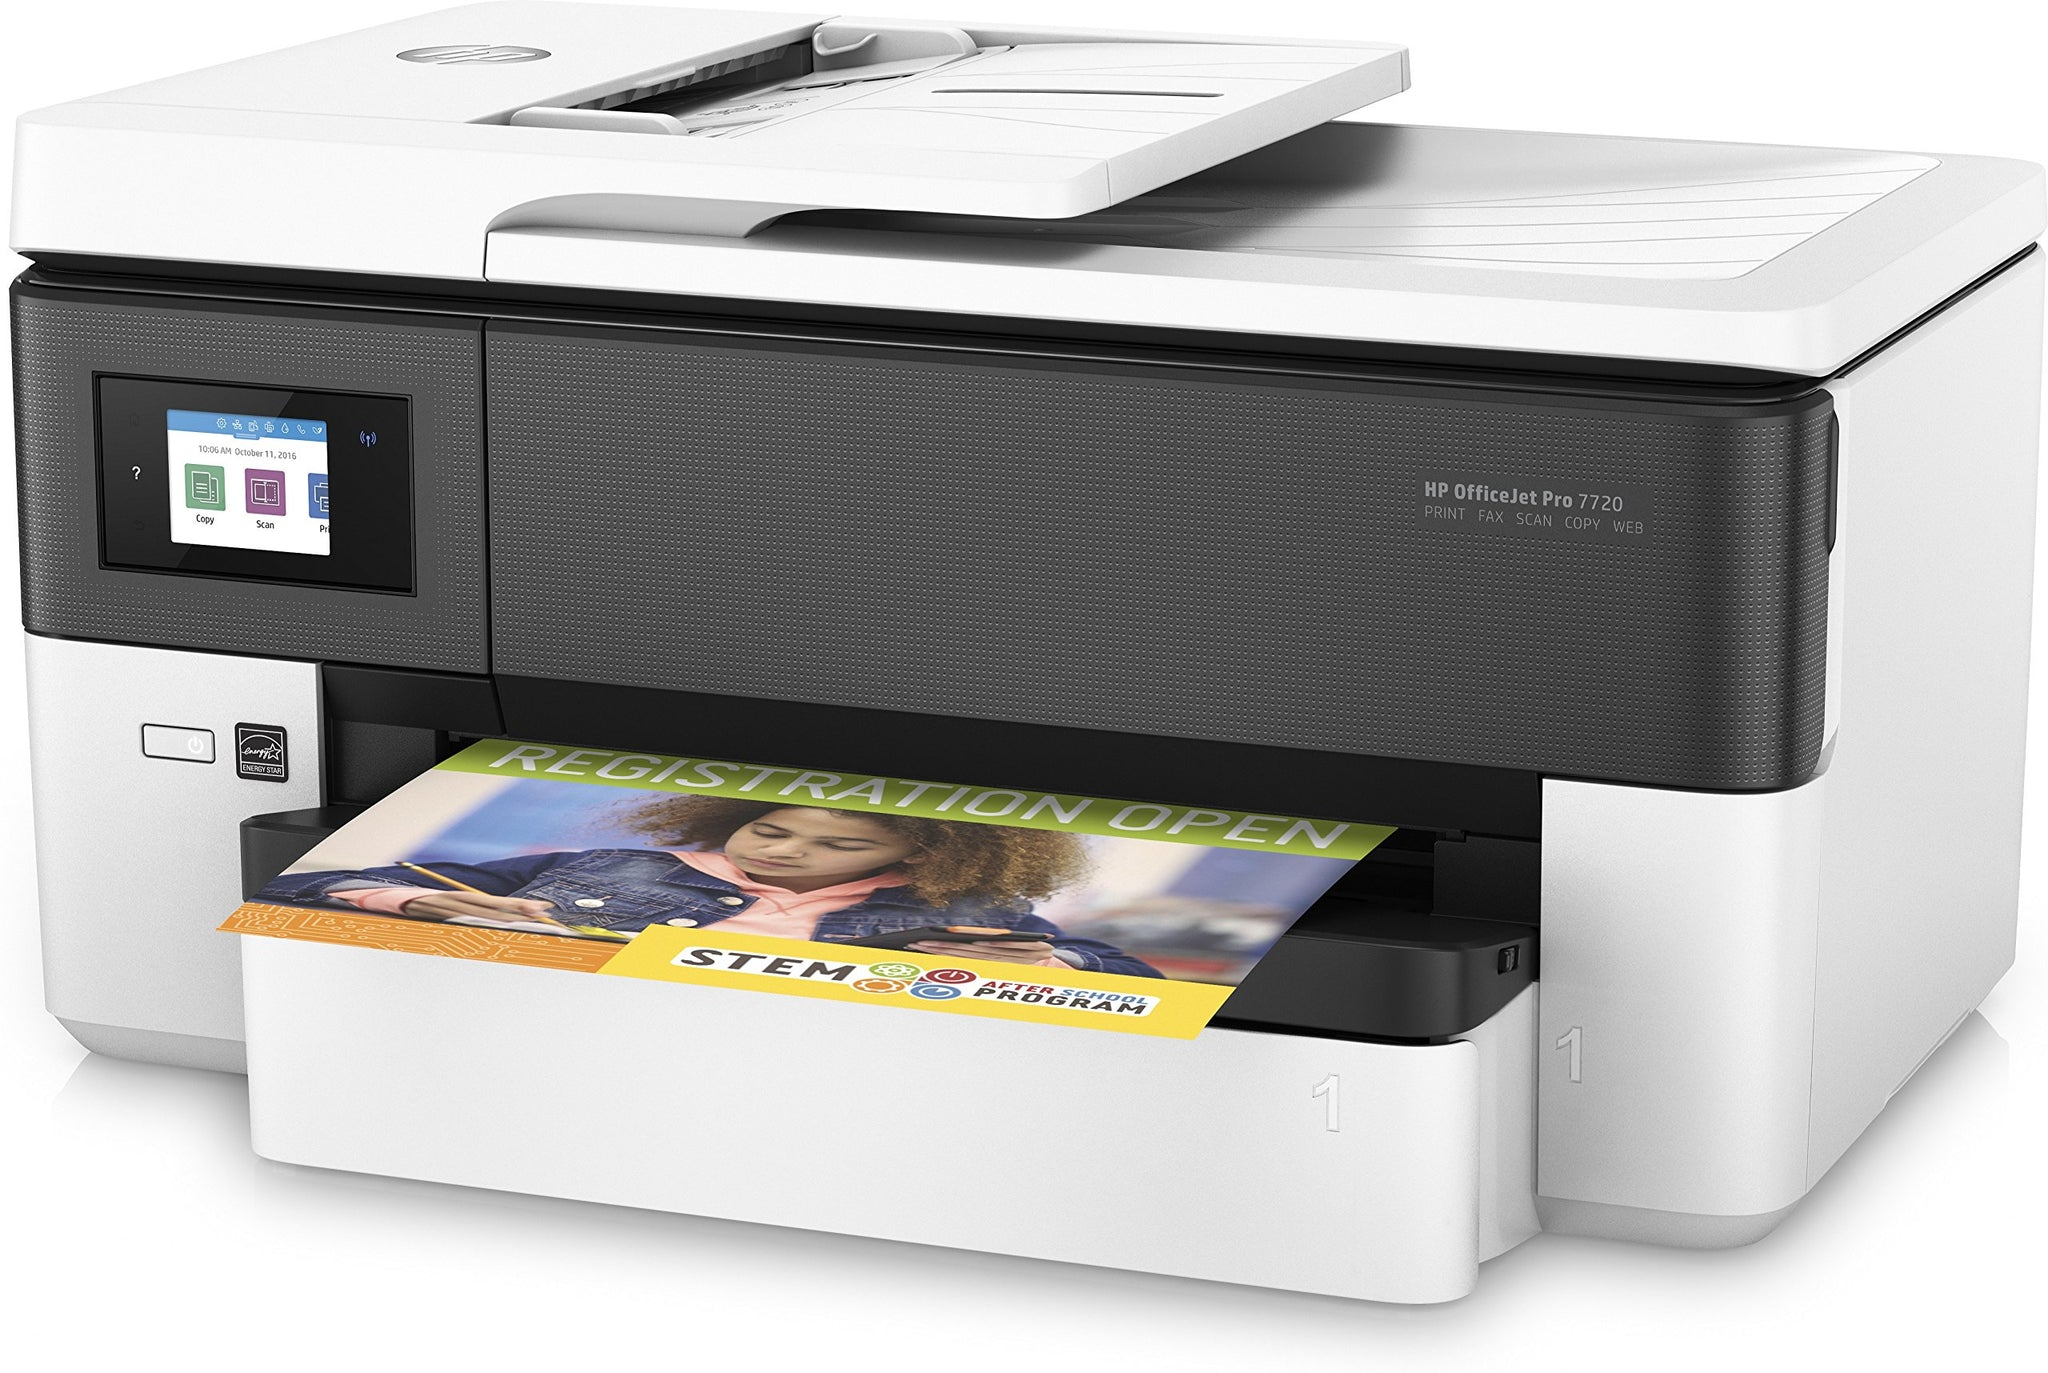 HP 7720 OfficeJet Pro Wide Format Wireless/Print/Scan/Copy/Fax All-in-One Printer- White - laptop world uganda